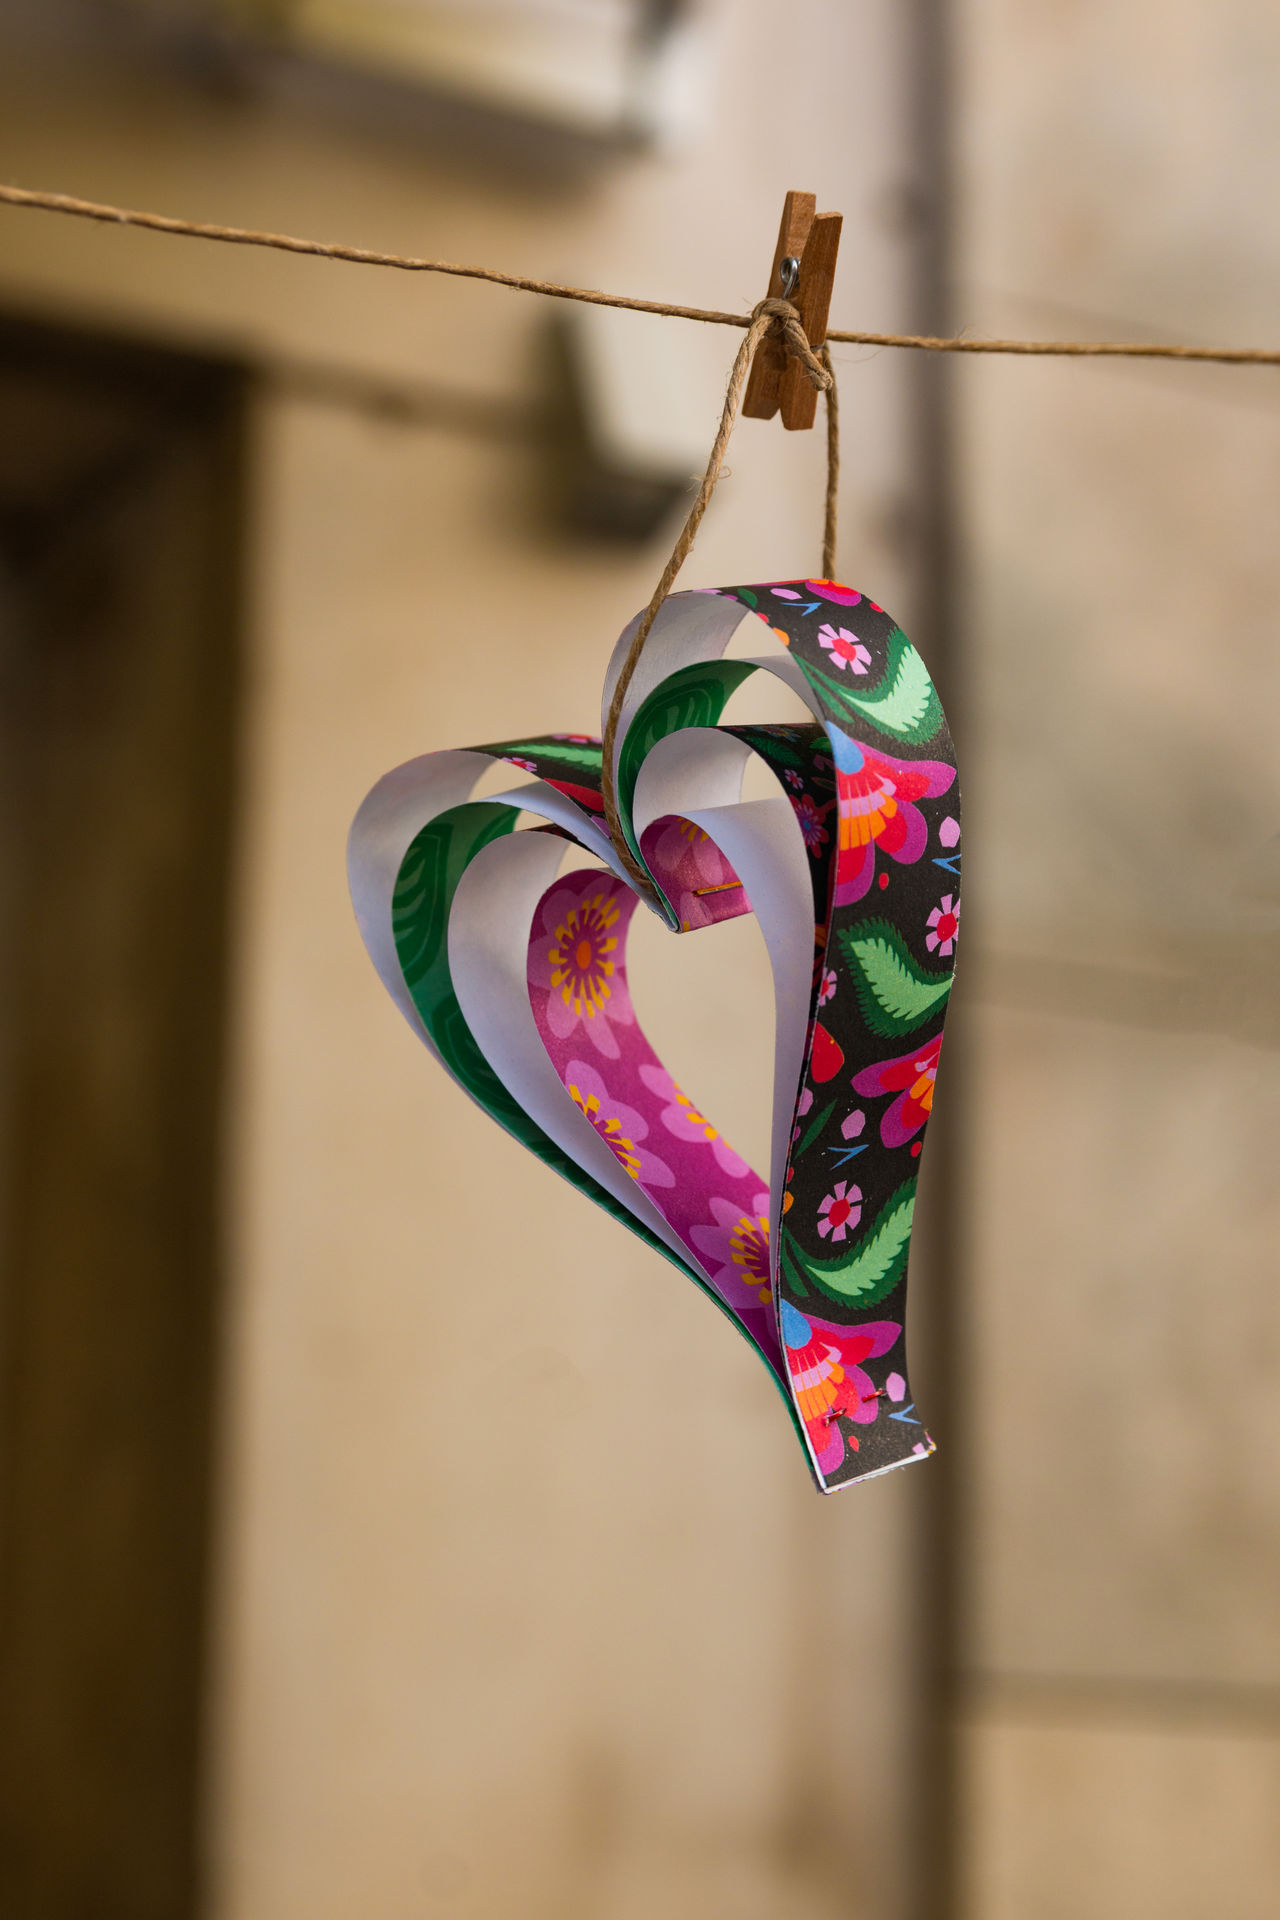 Close-up Day Decoration Focus On Foreground Handmade Hanging Heart Shape No People Outdoors Valentine's Day